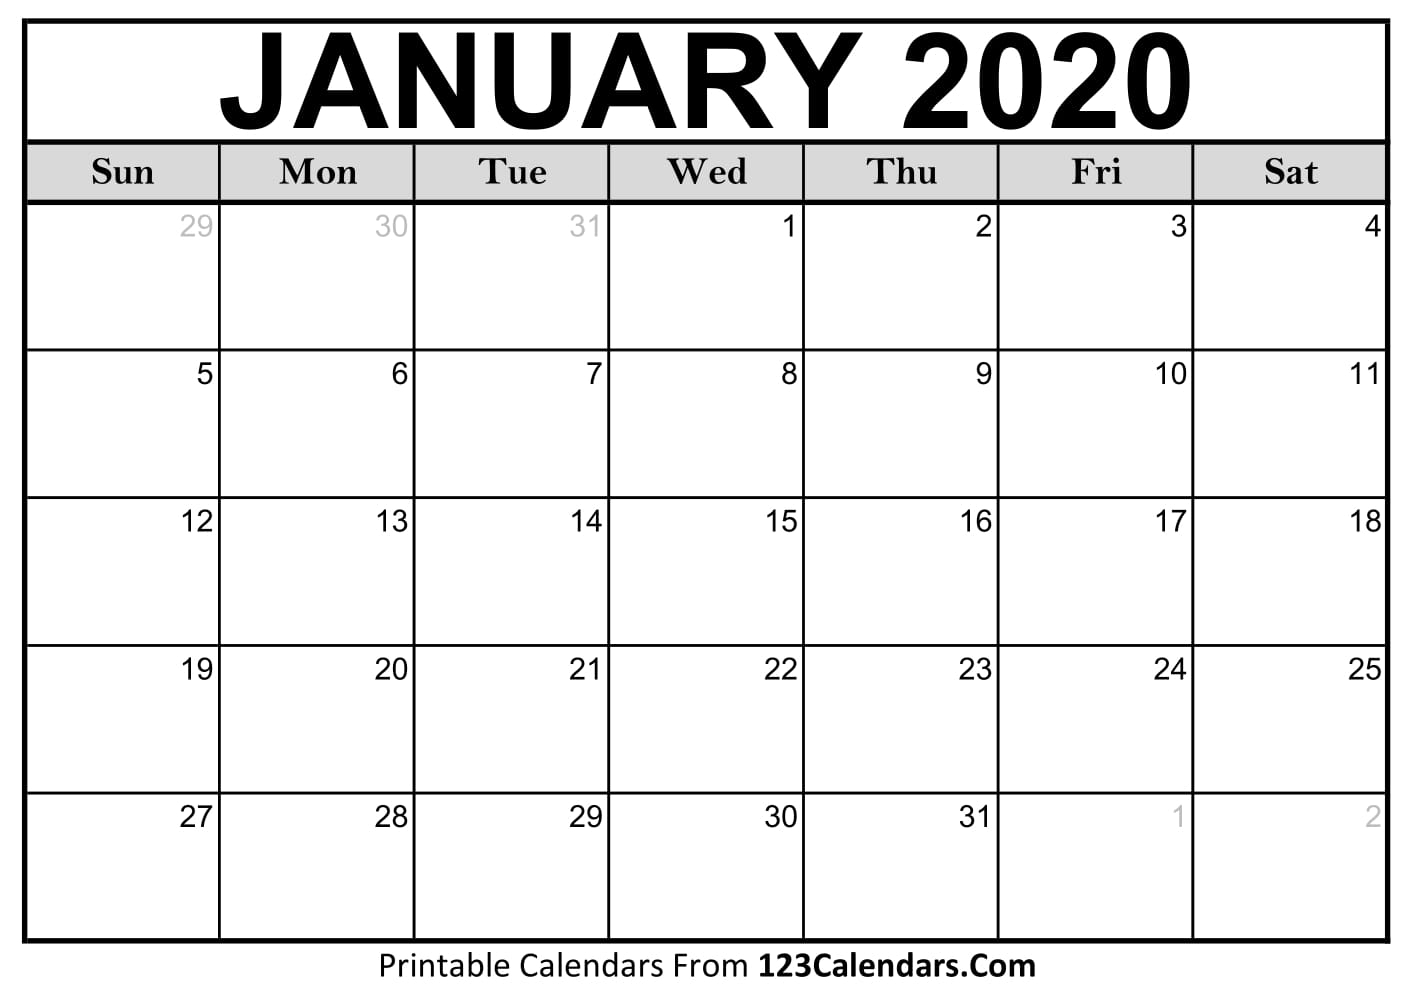 January 2020 Printable Calendar | 123Calendars within Monday Thru Friday Calendar 2020 Template